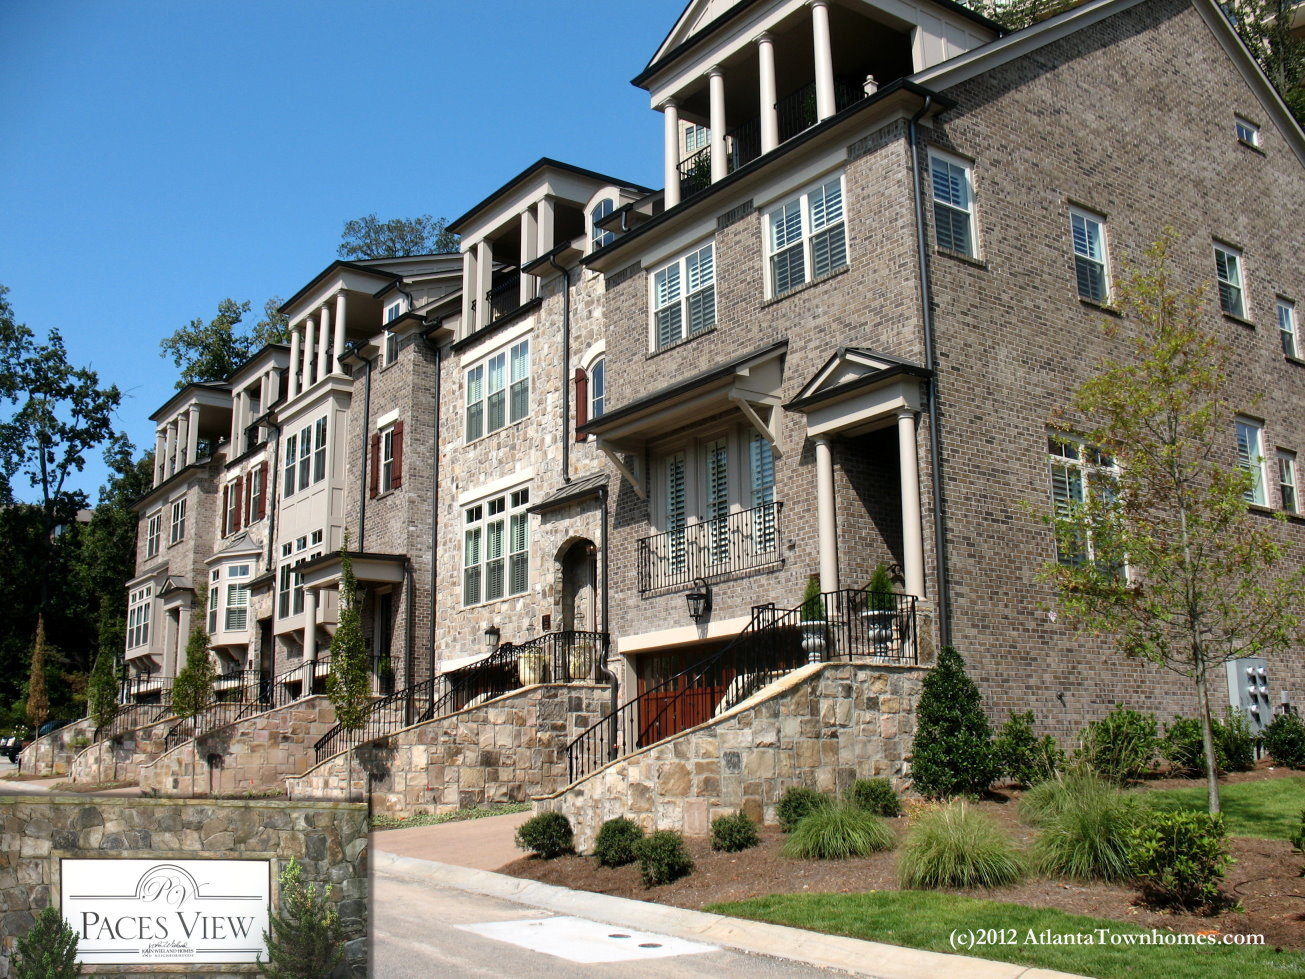 paces view townhomes in vinings